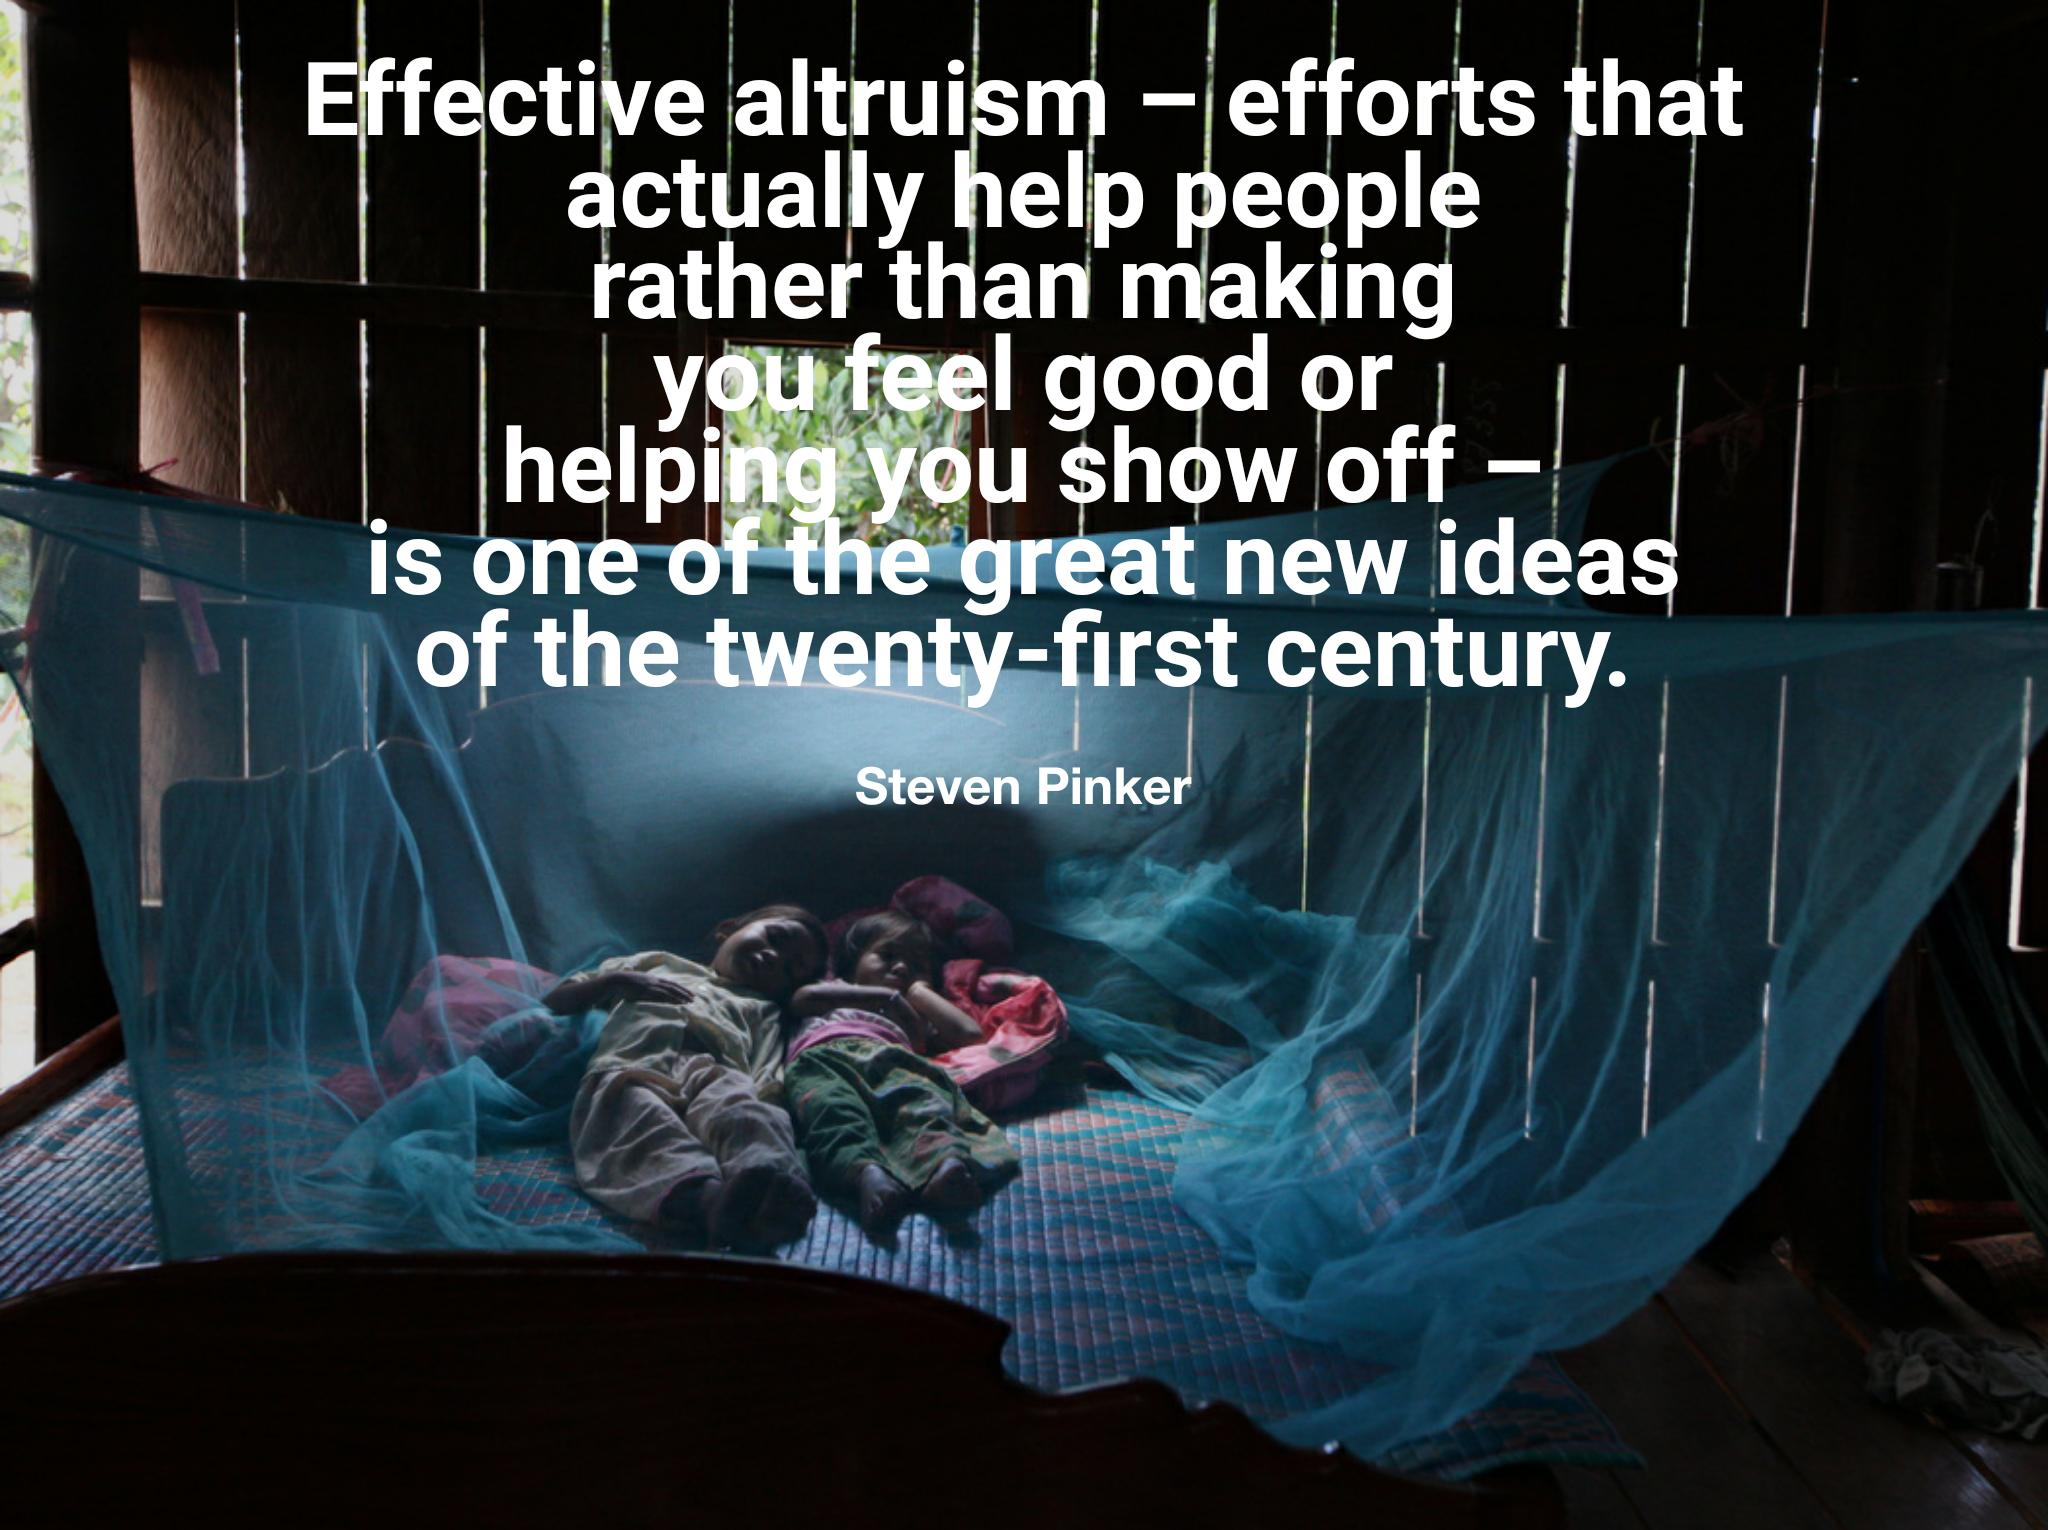 """Effective altruism — efforts that actually help people rather than making you feel good or helping you show off — is one of the great new ideas of the twenty-first century."" -Steven Pinker [2048×1530][OC]"